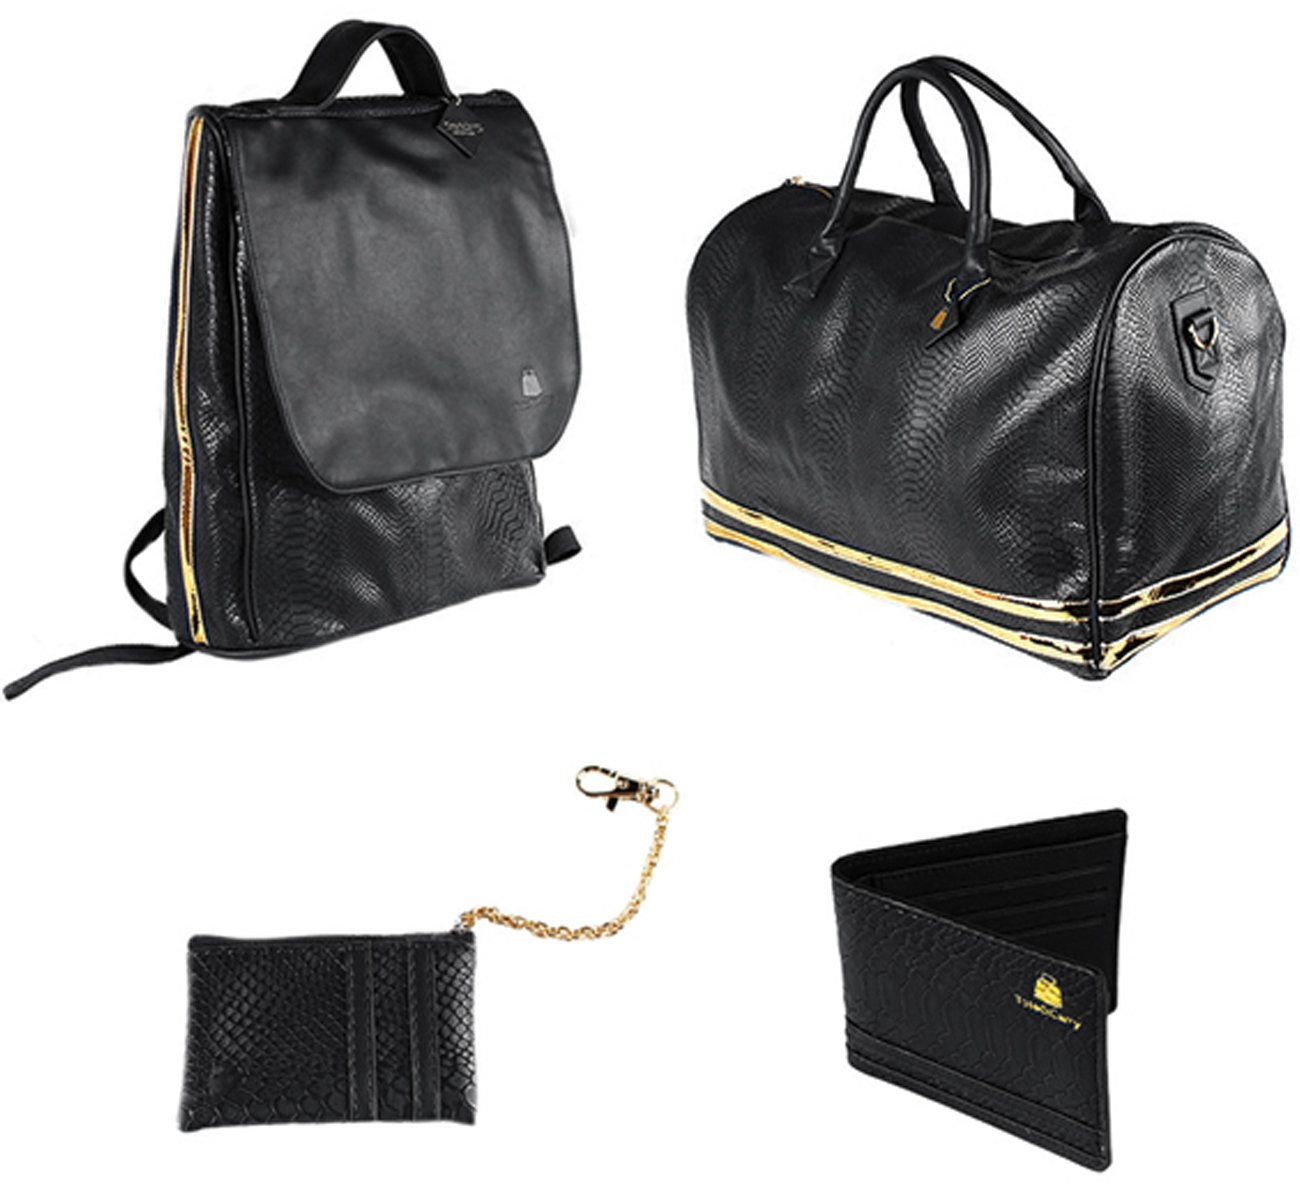 4 Pcs Luxury Duffle Bag Backpack Coin Purse Wallet Set Snake Grain Vegan Leather / Patent (Black/Gold)